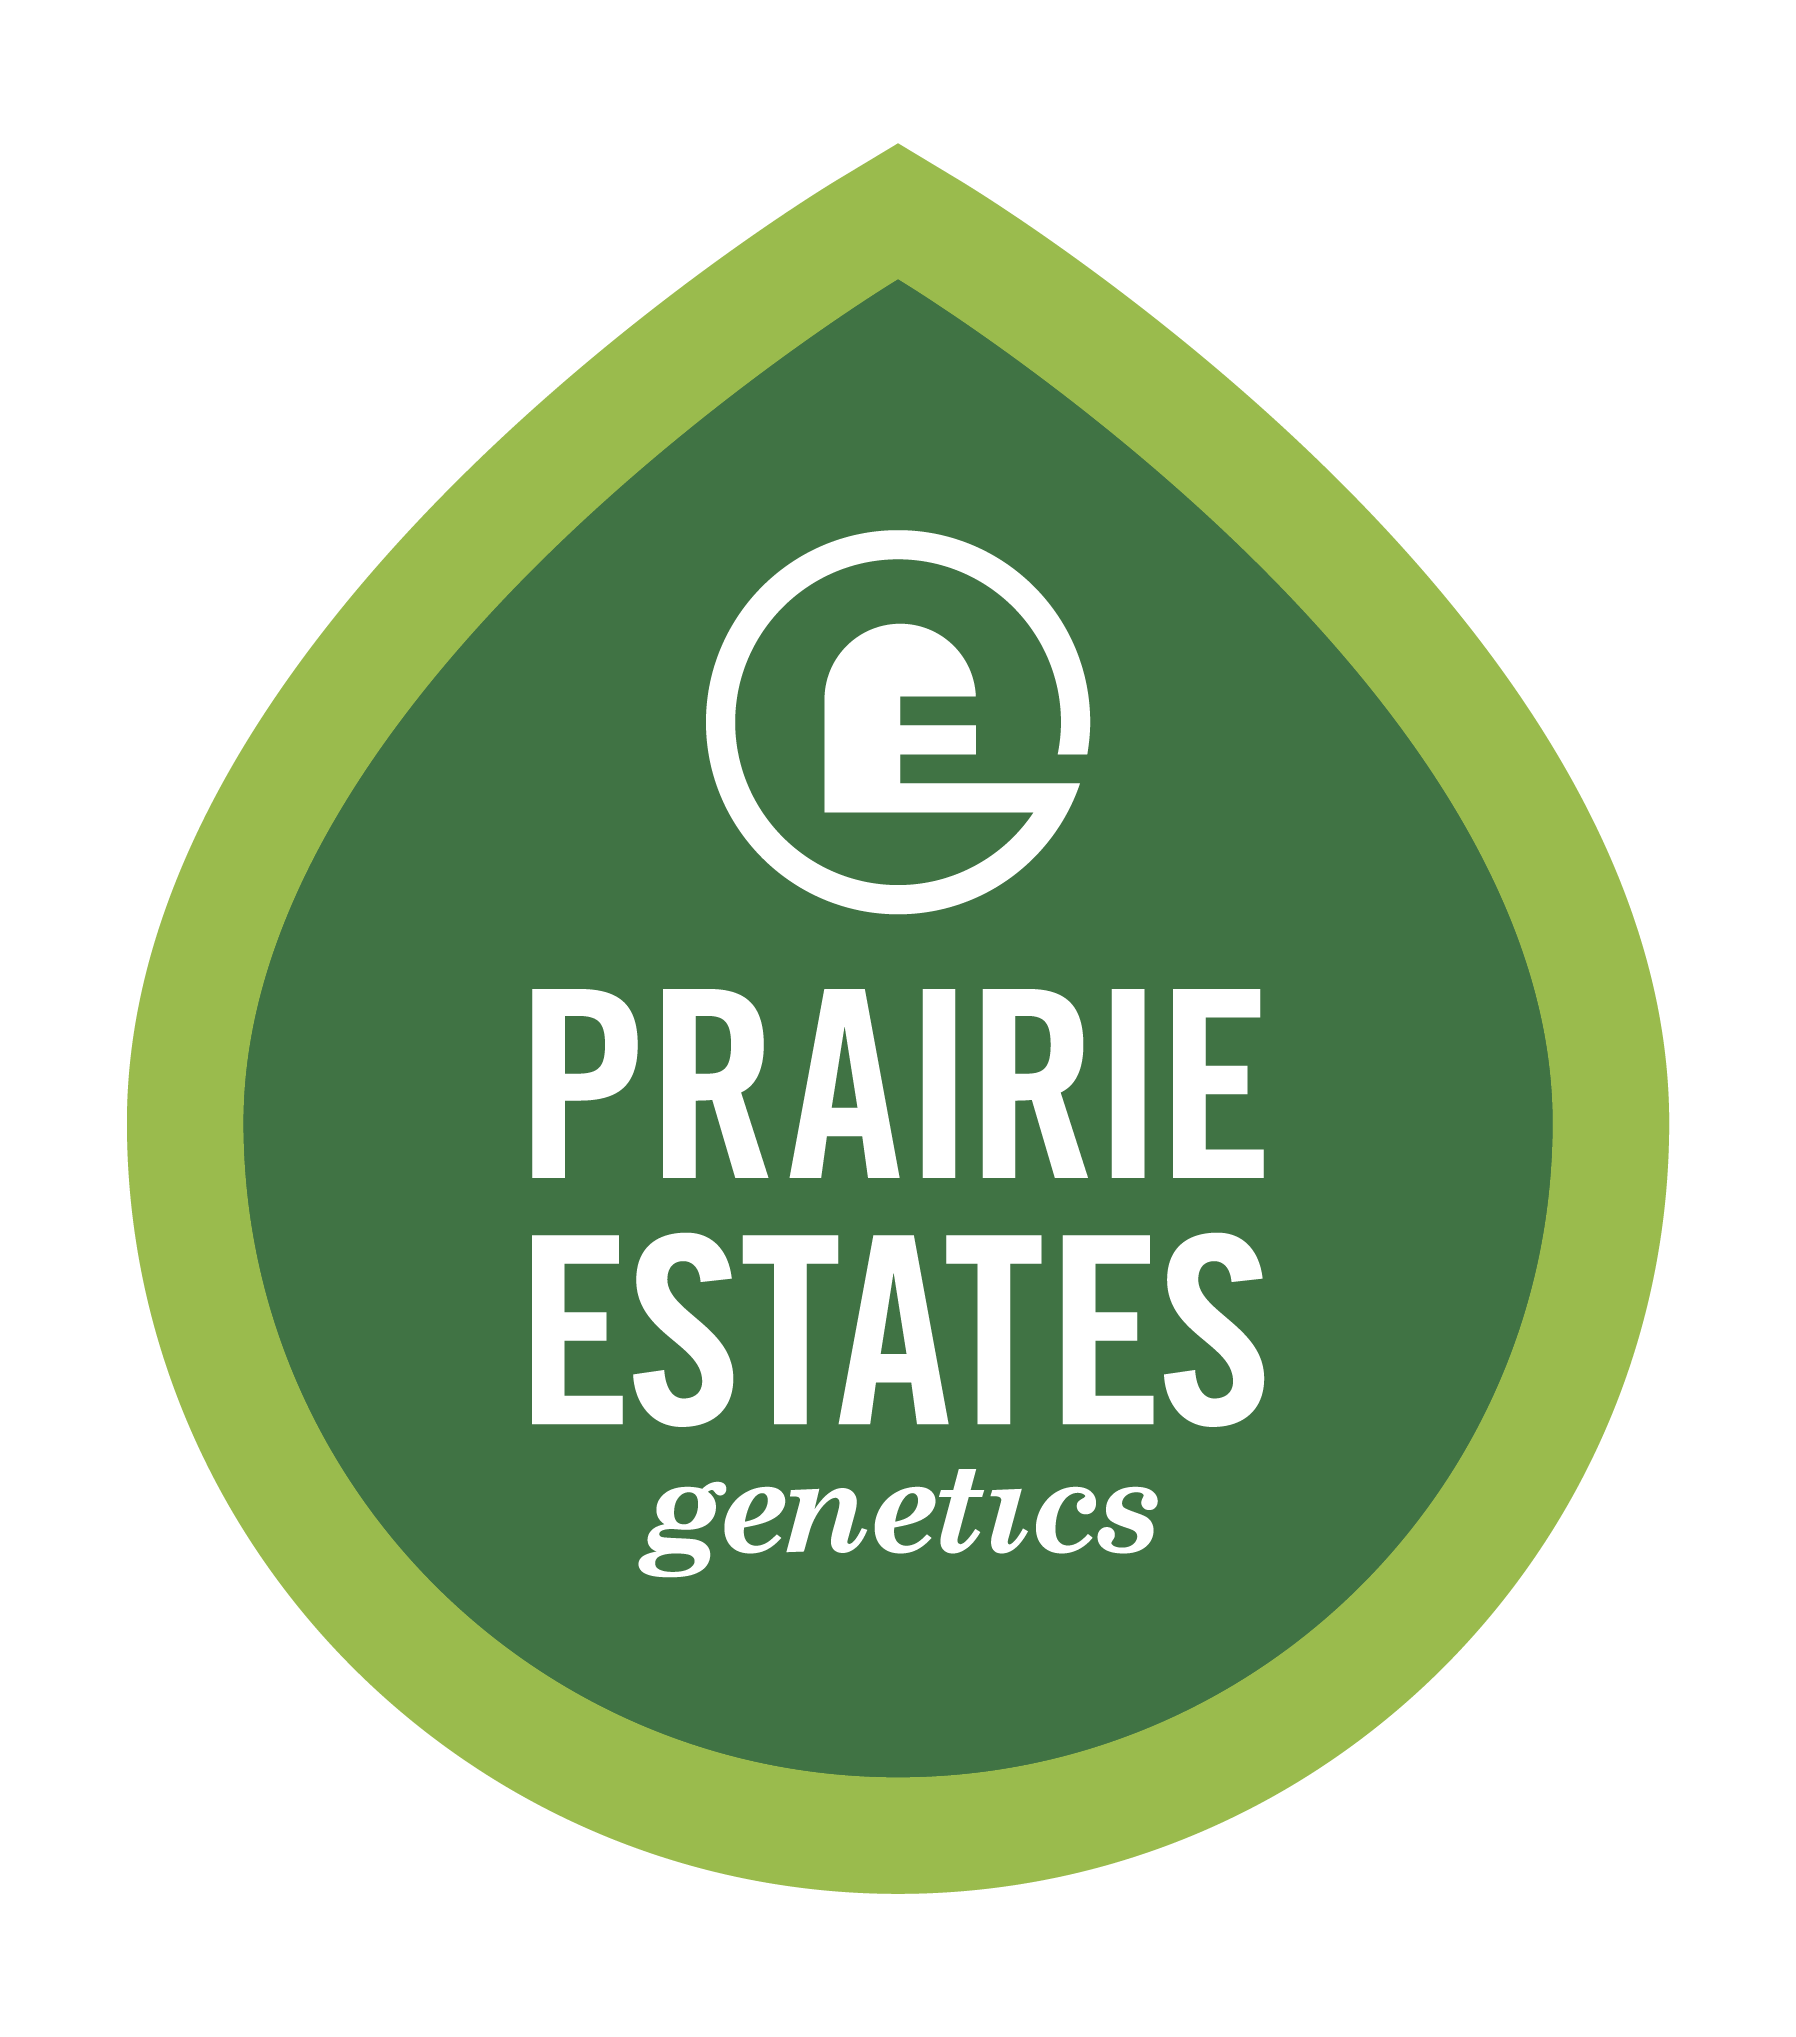 prairie estate genetics